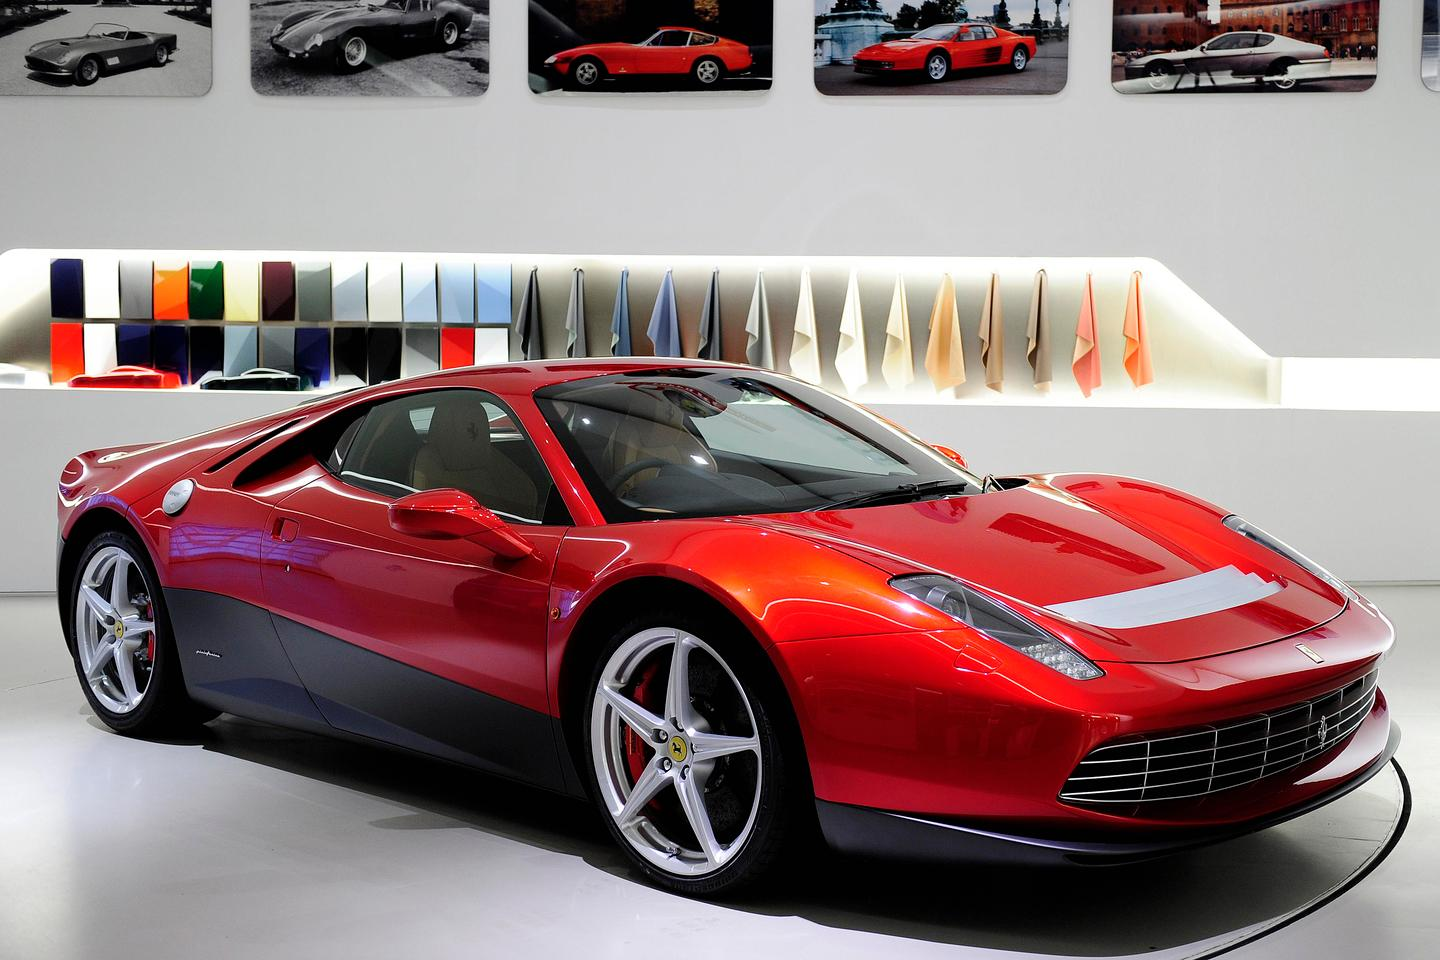 The Ferrari SP12 EC was designed by Clapton in collaboration with Pininfarina and Centro Stile Ferrari